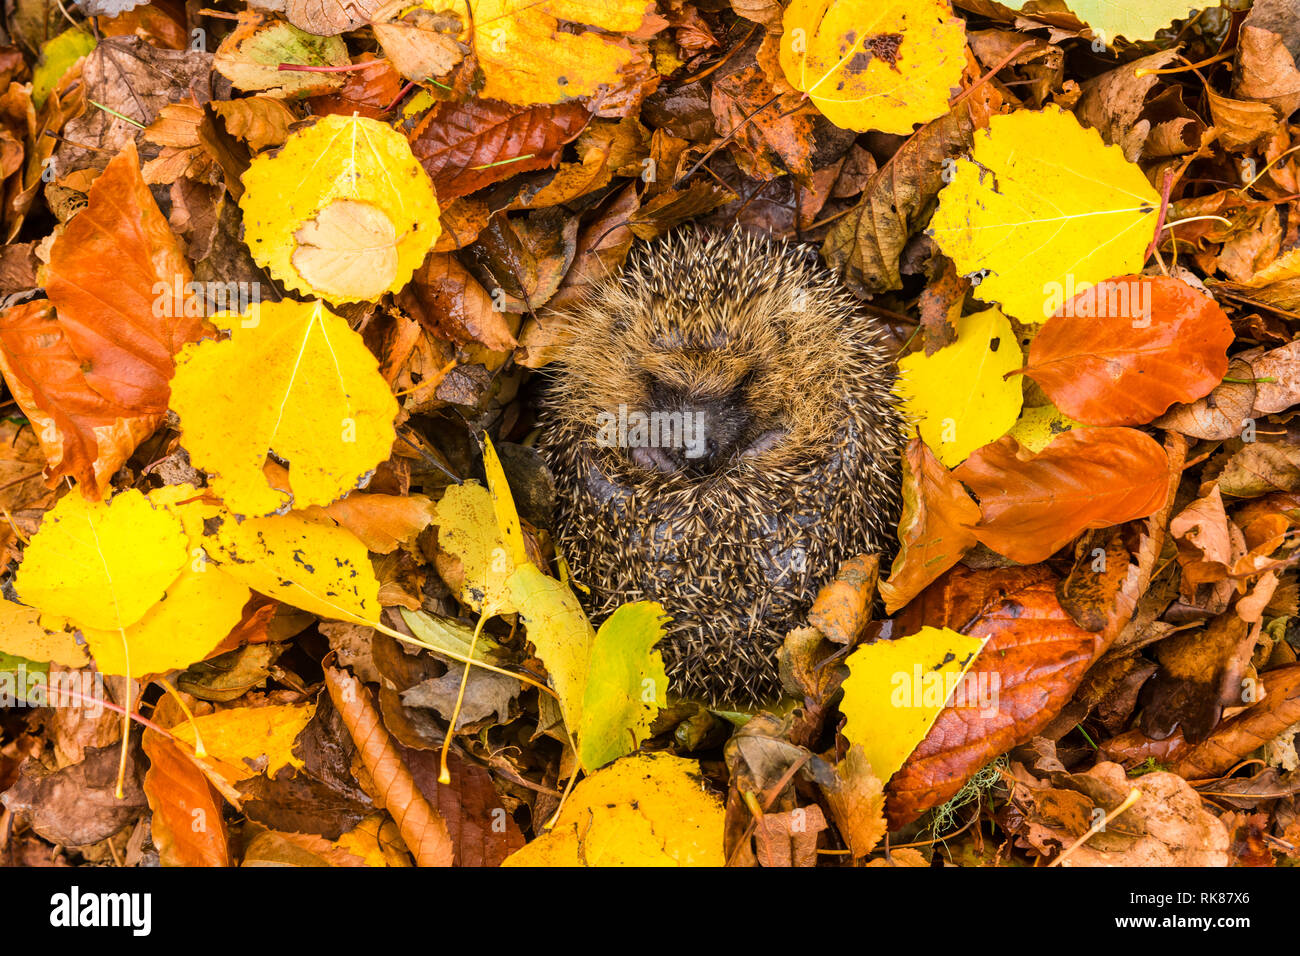 Hedgehog, native, wild,European hedgehog (Erinaceus Europaeus) curled into a ball, hibernating in colourful yellow, orange and brown Autumn. Landscape - Stock Image